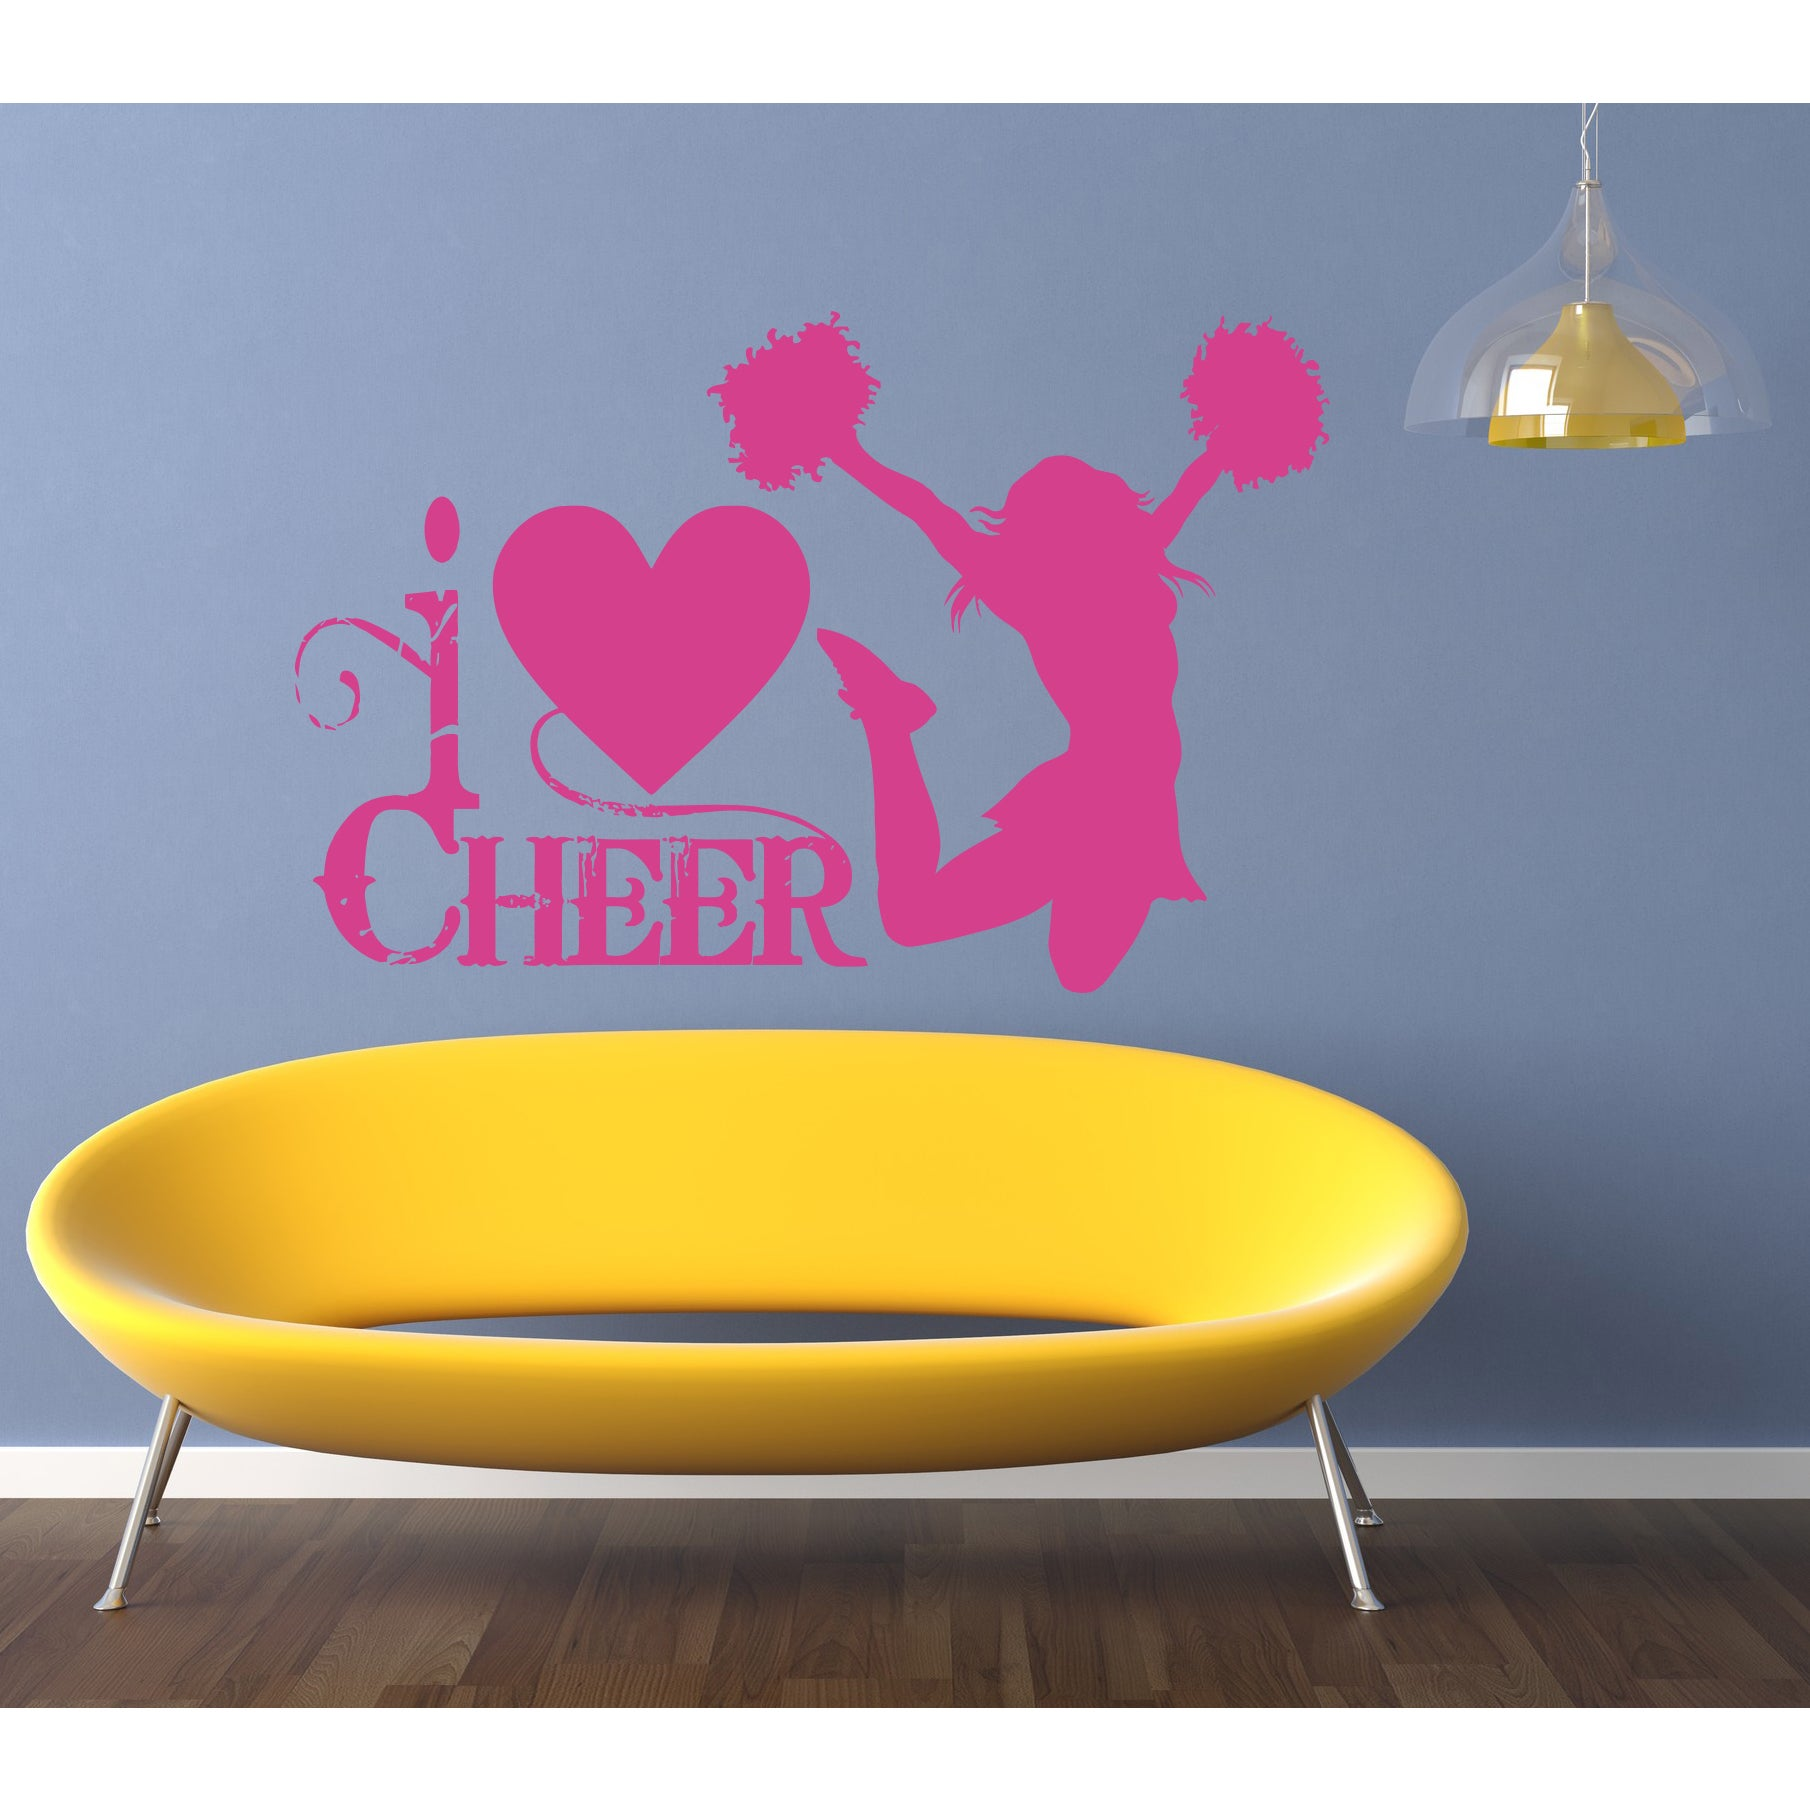 Cheerleader girl Wall Art Sticker Decal Pink - Free Shipping On ...